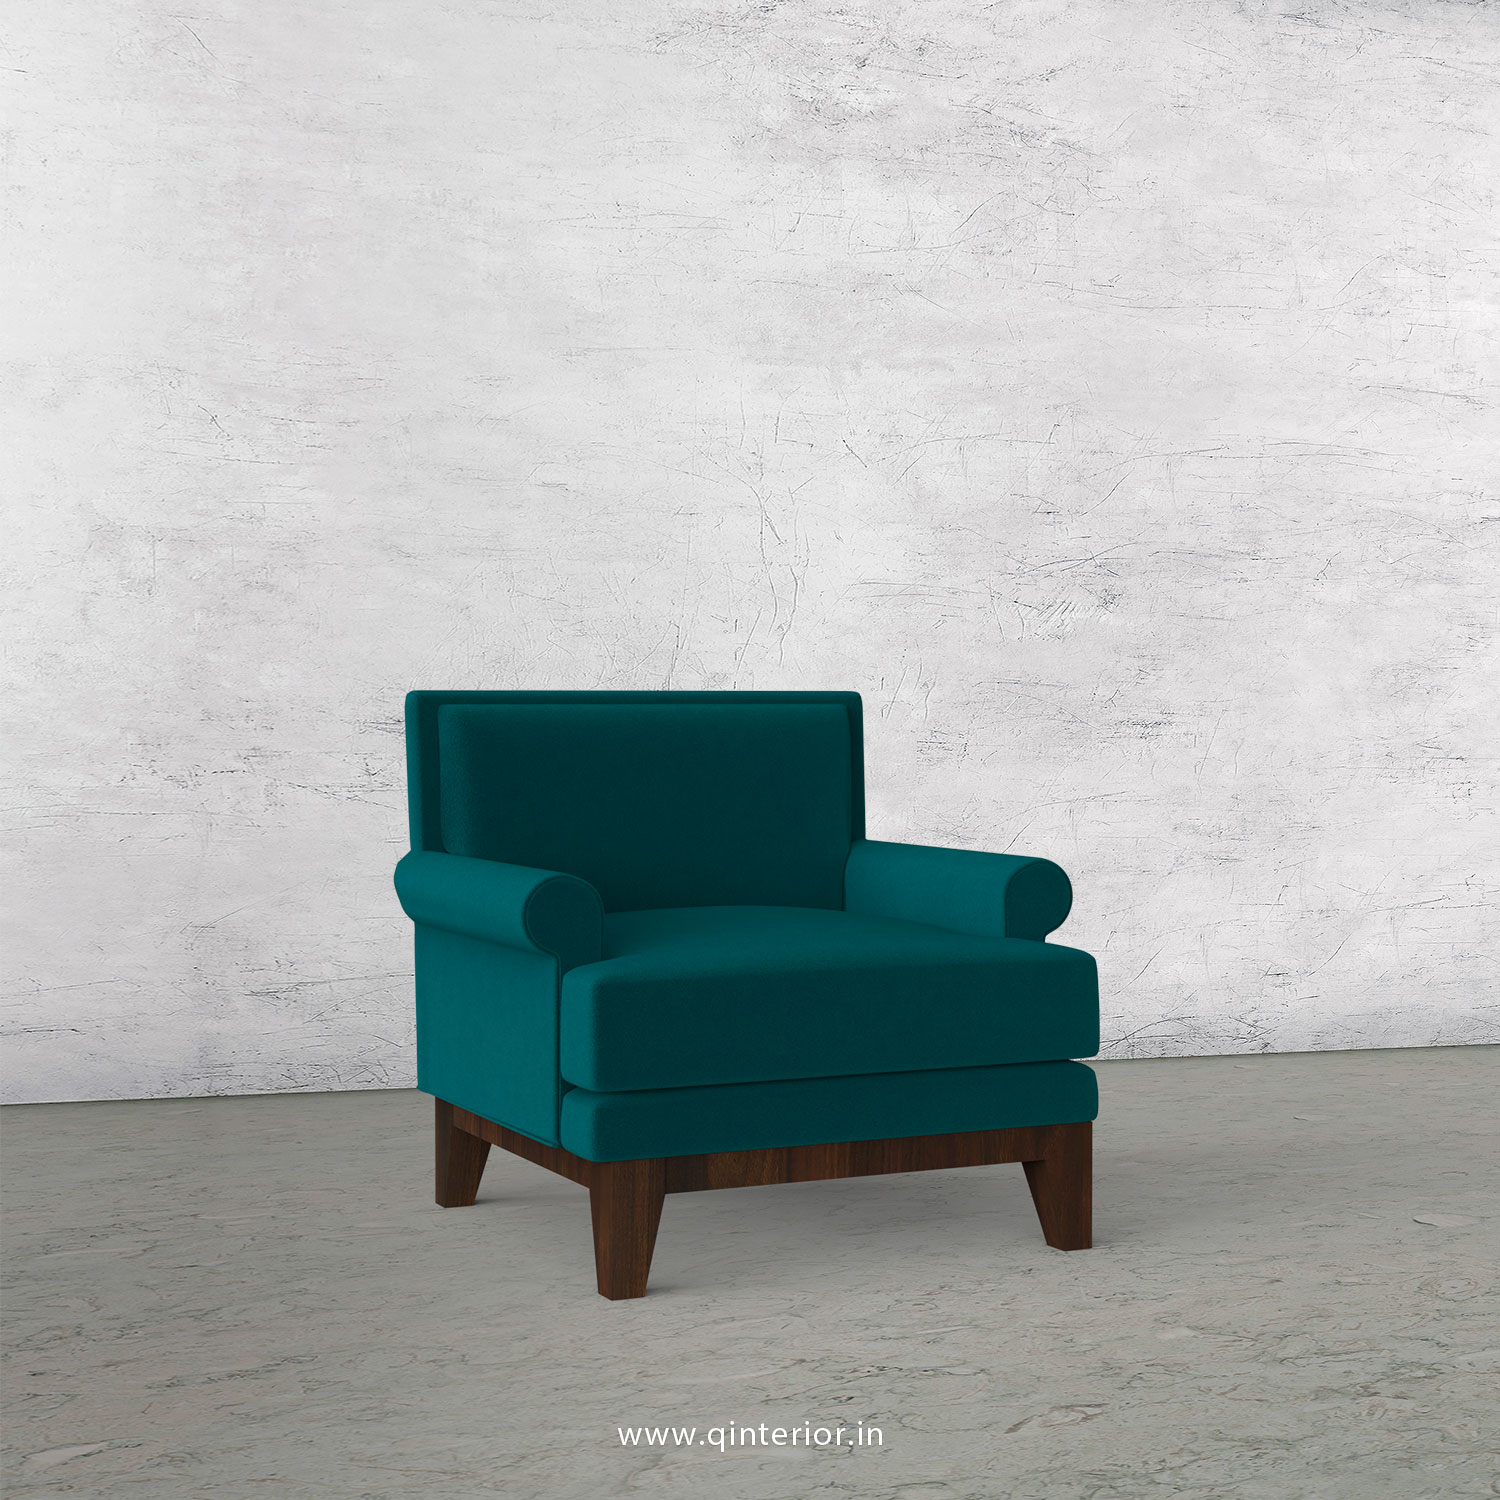 Aviana 1 Seater Sofa in Velvet Fabric - SFA001 VL13